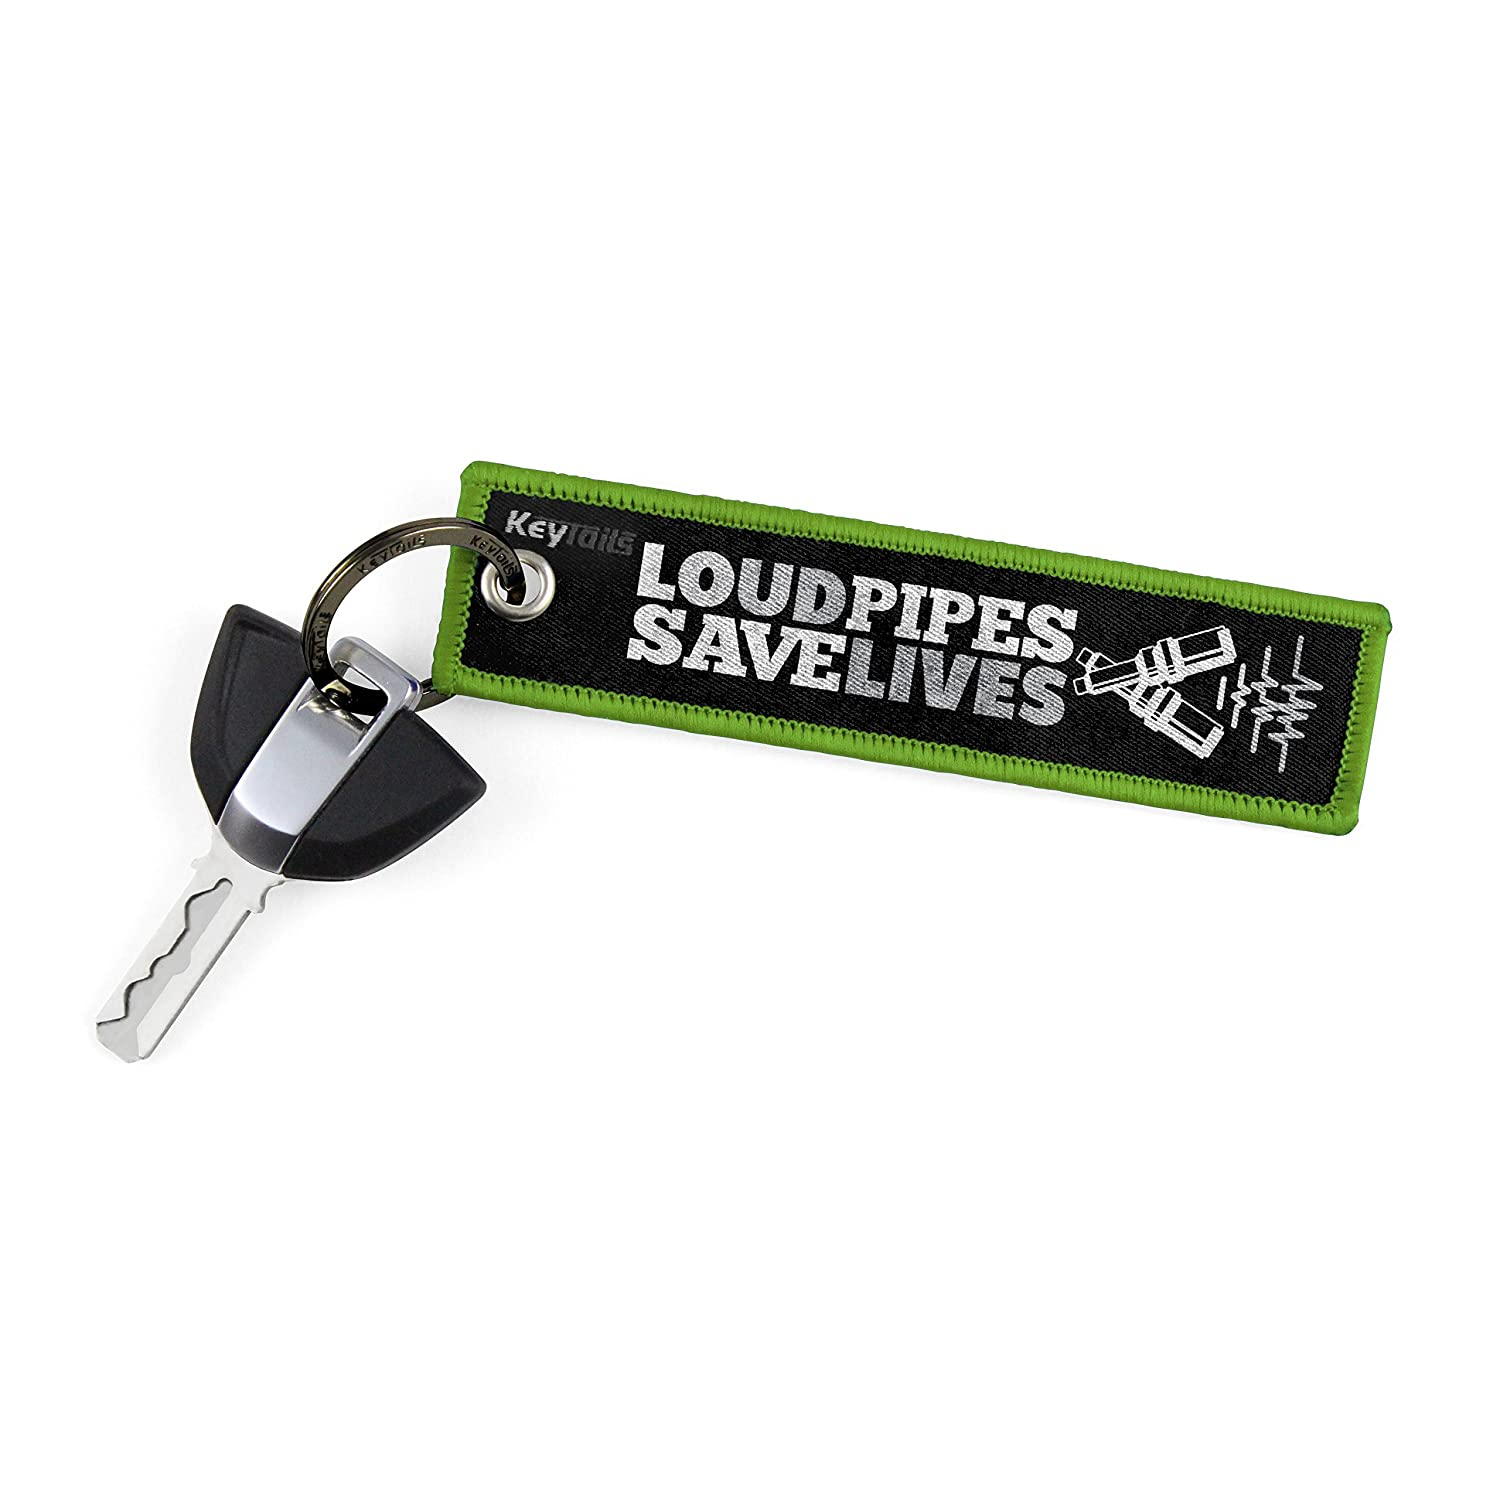 UTV Premium Quality Key Tag for Motorcycle Scooter Loud Pipes, Save Lives KEYTAILS Keychains ATV